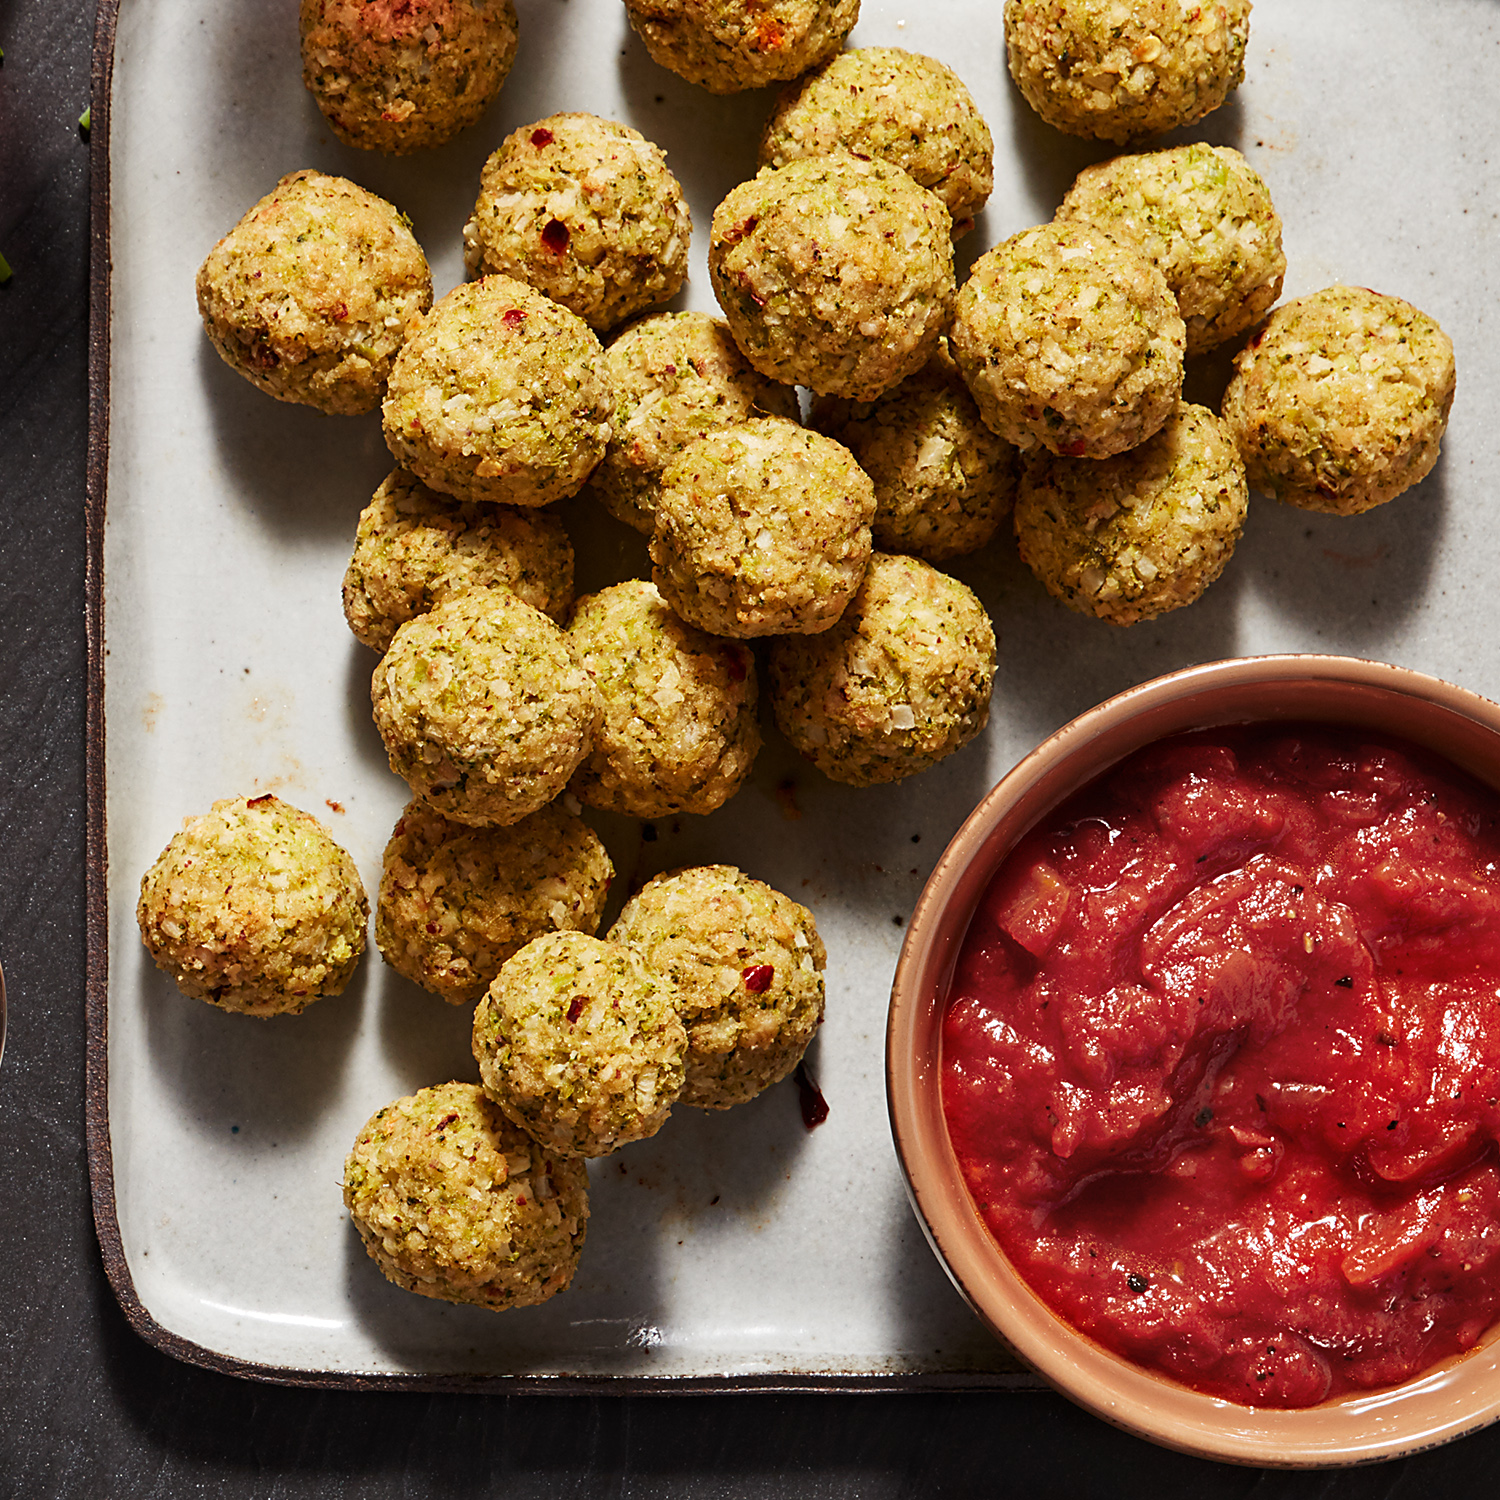 Spicy Meatless Meatballs with Fire-Roasted Red Sauce